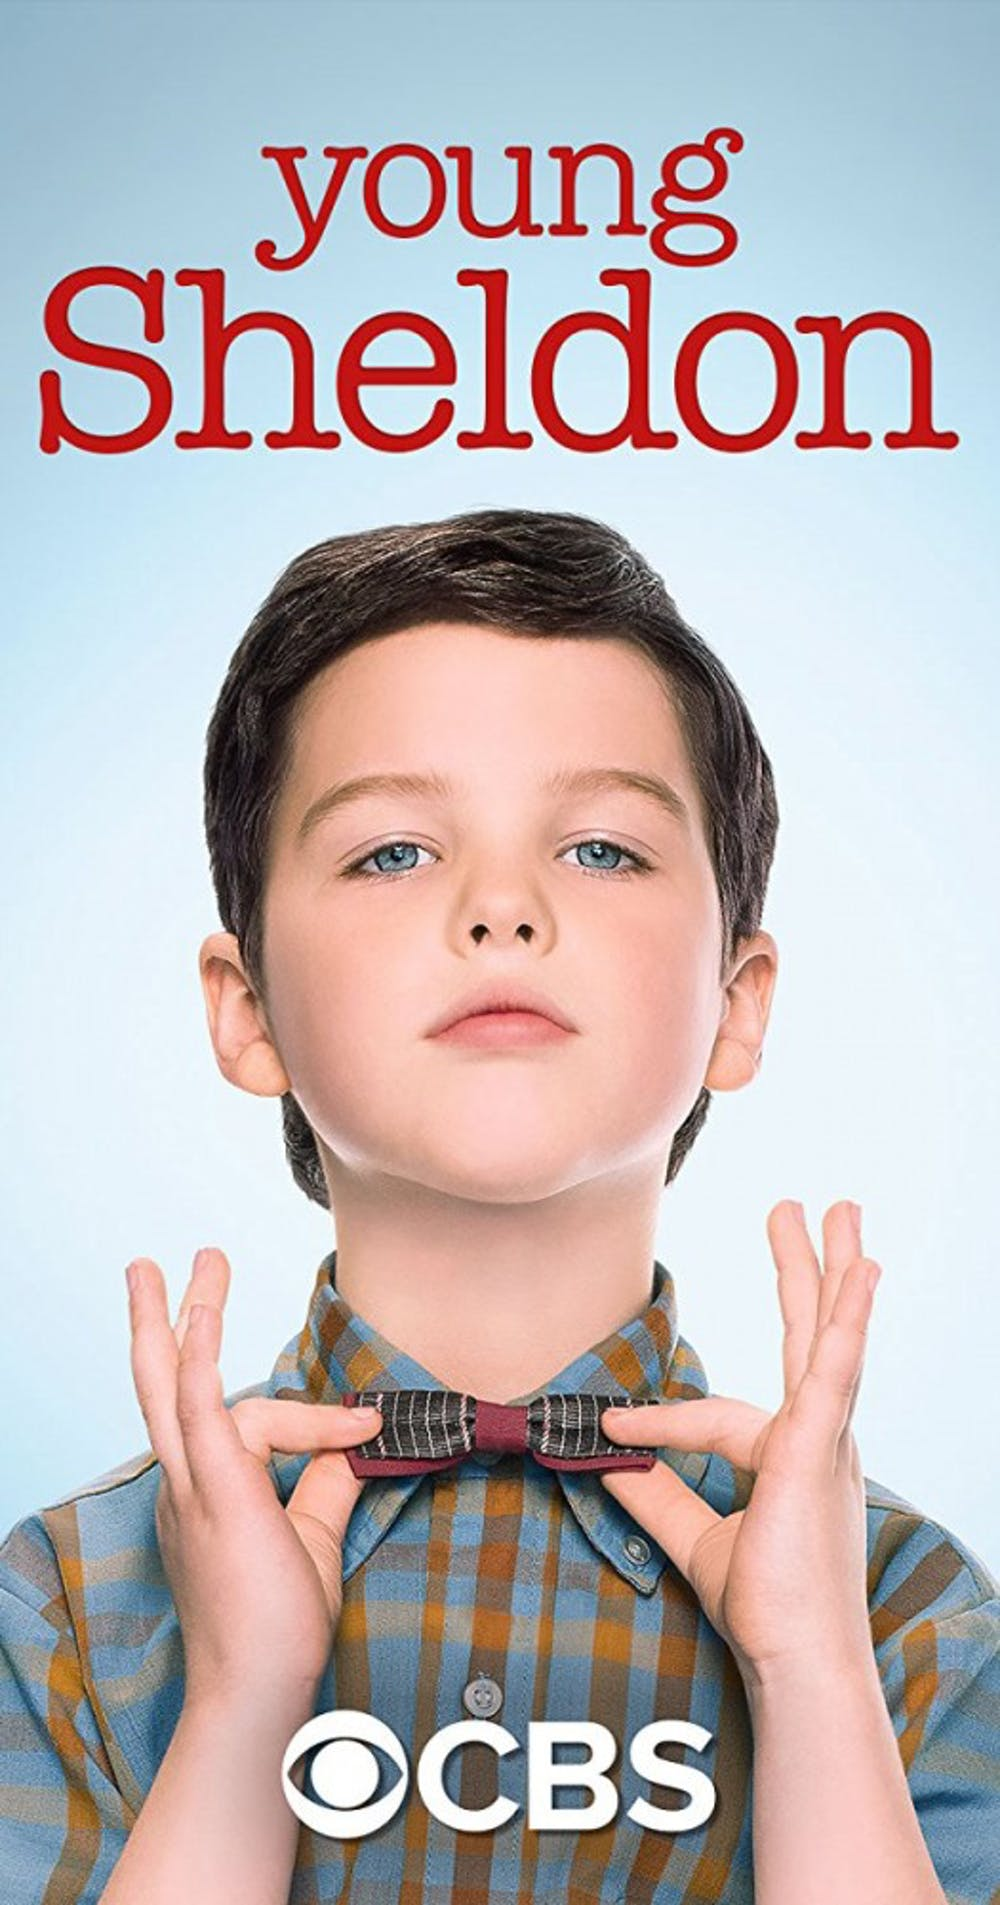 ae-youngsheldon-courtesywarnerbros